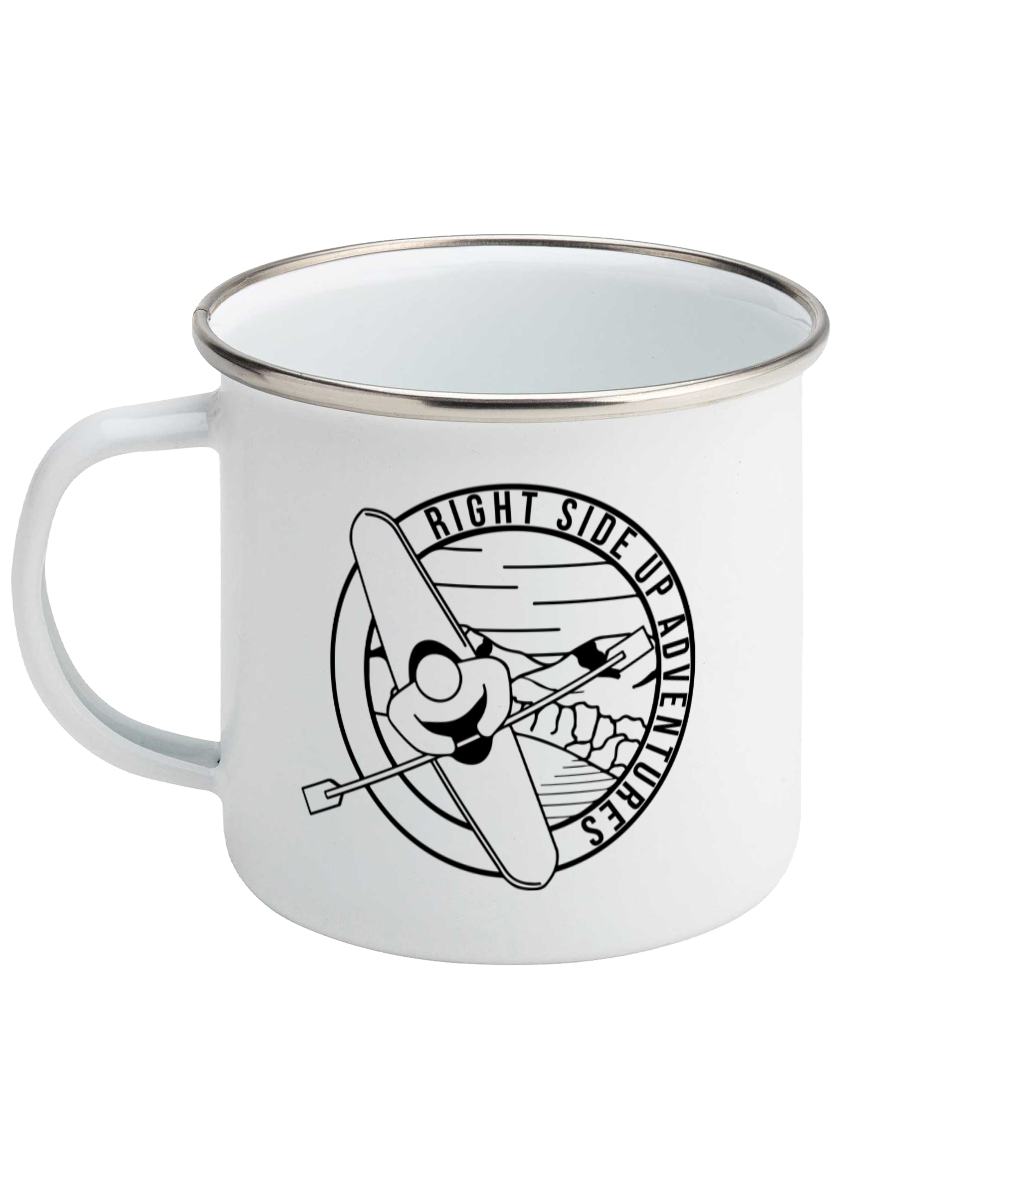 Right Side Up Adventures - Enamel Mug, Suggested Products, Pen and Ink Studios Adventure Clothing